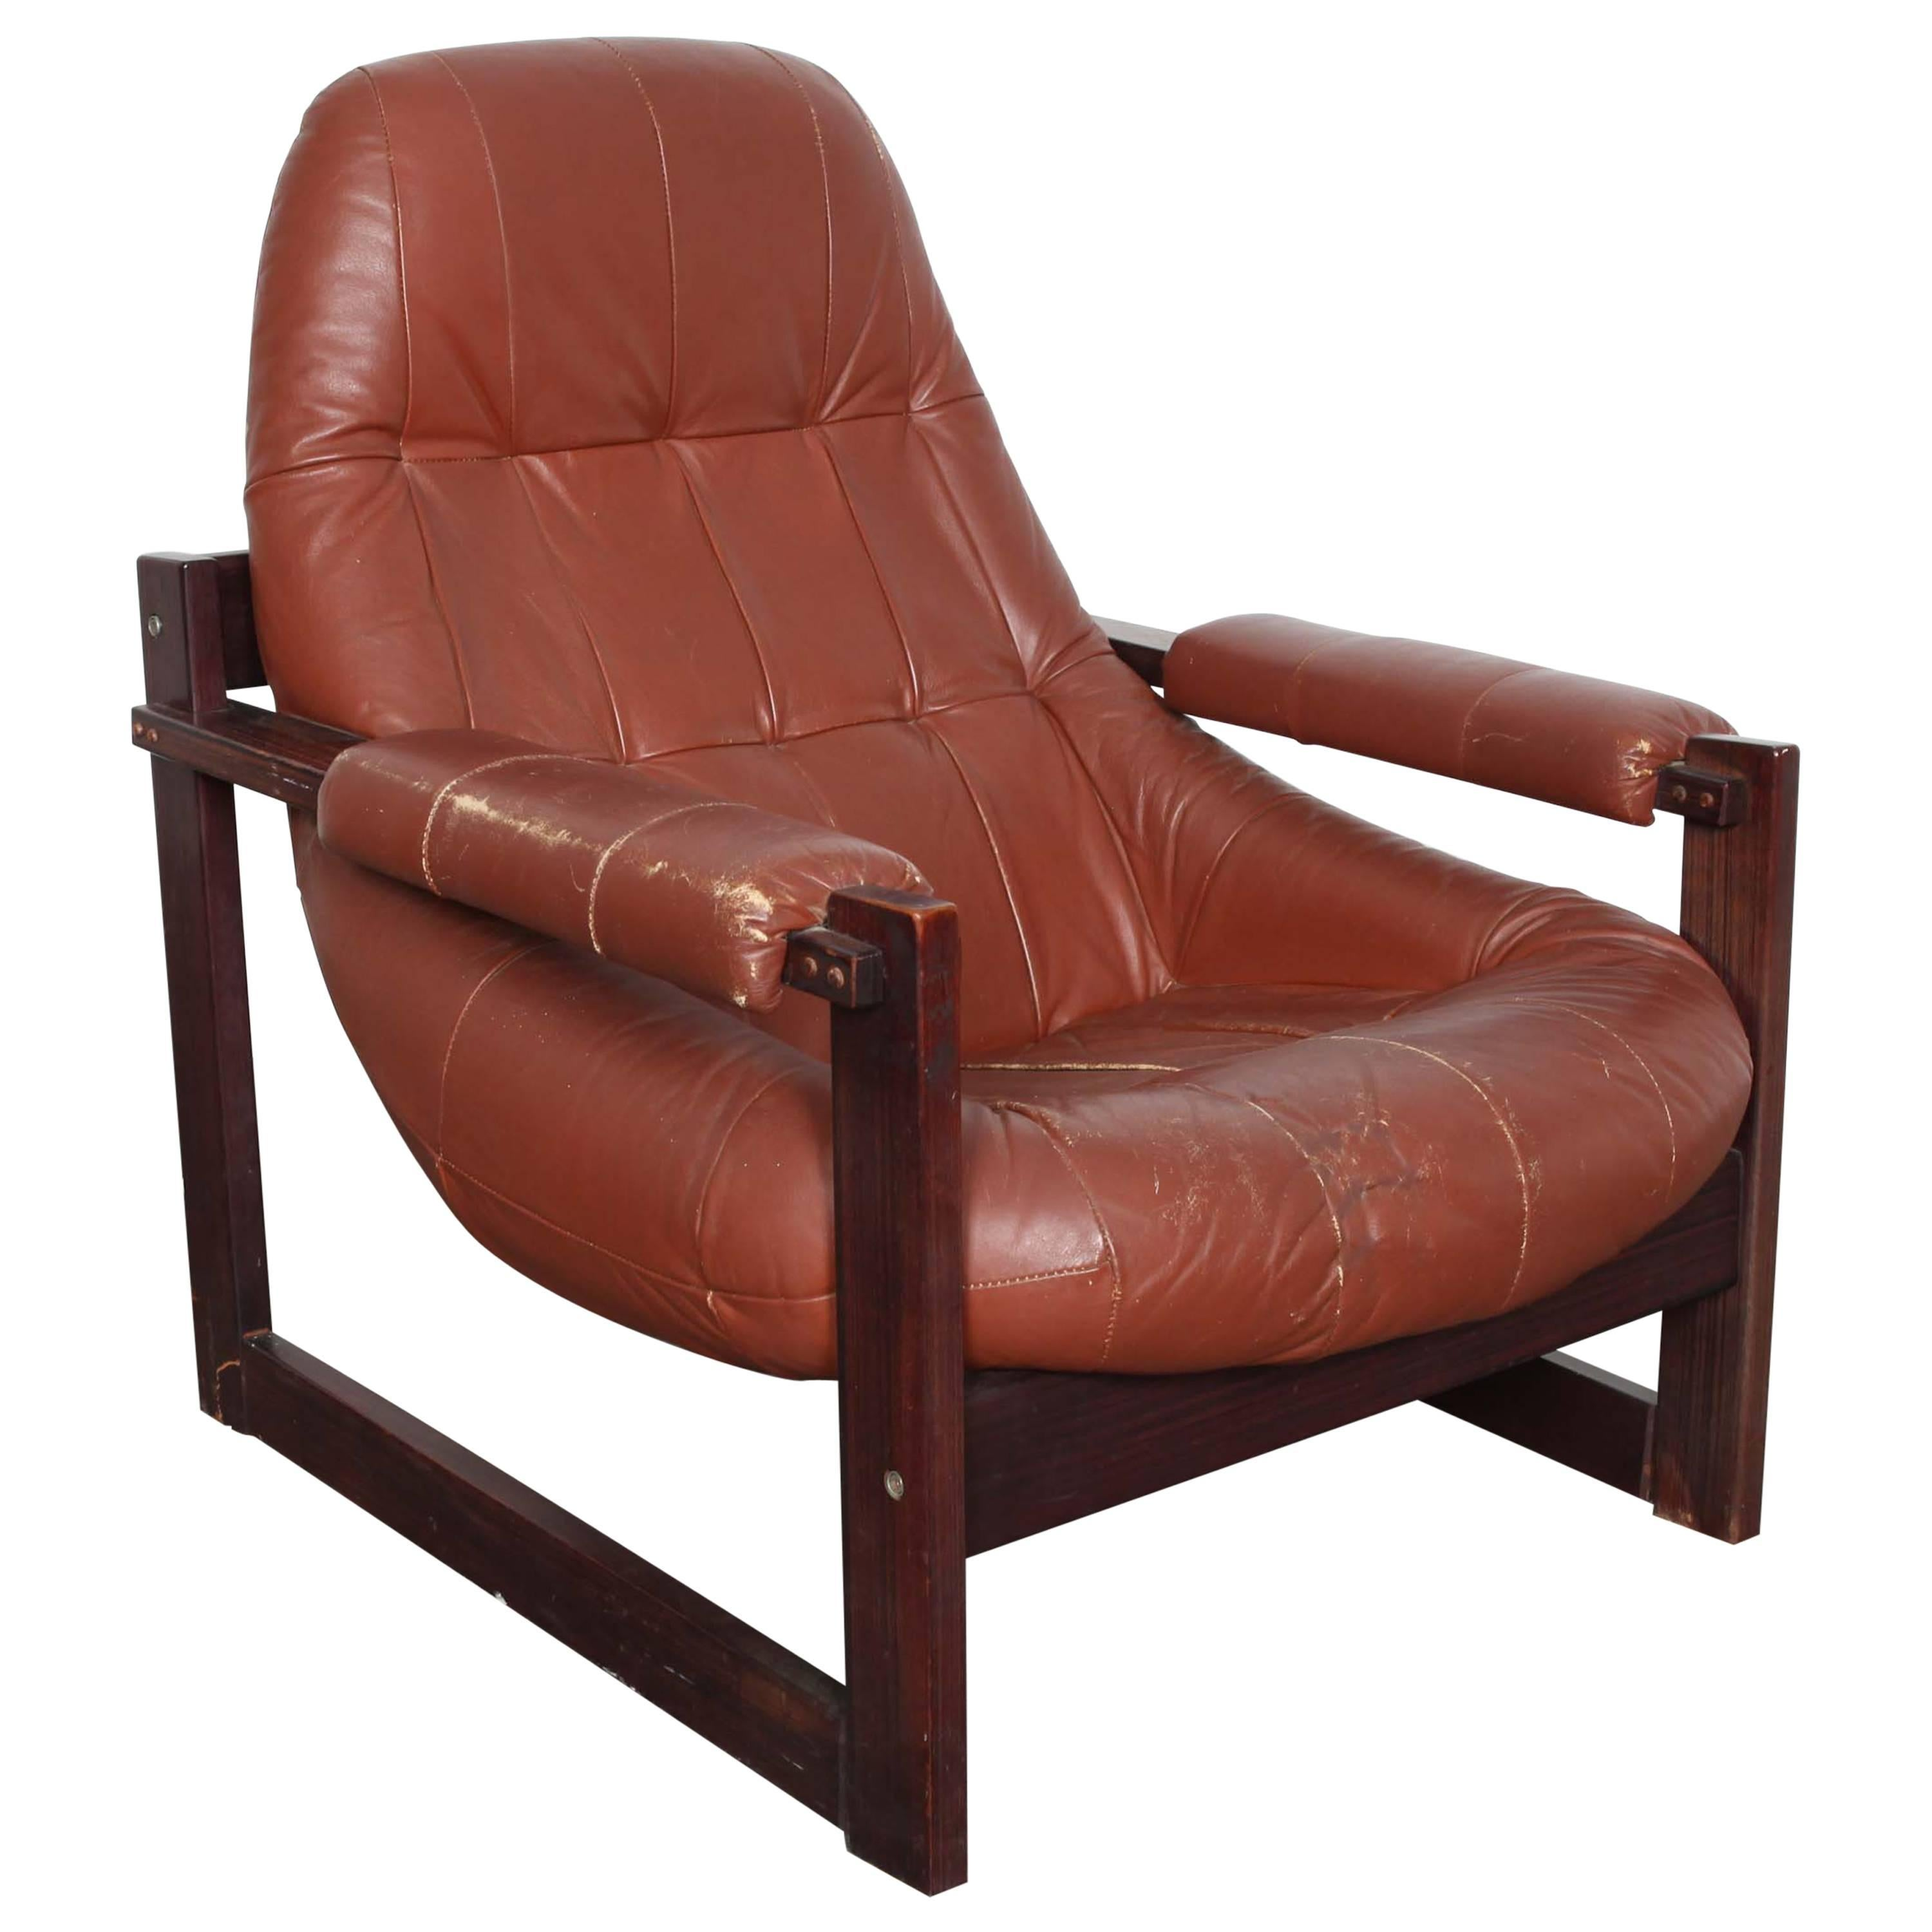 Leather Lounge Chair By Percival Lafer From Brazil For Sale At 1stdibs